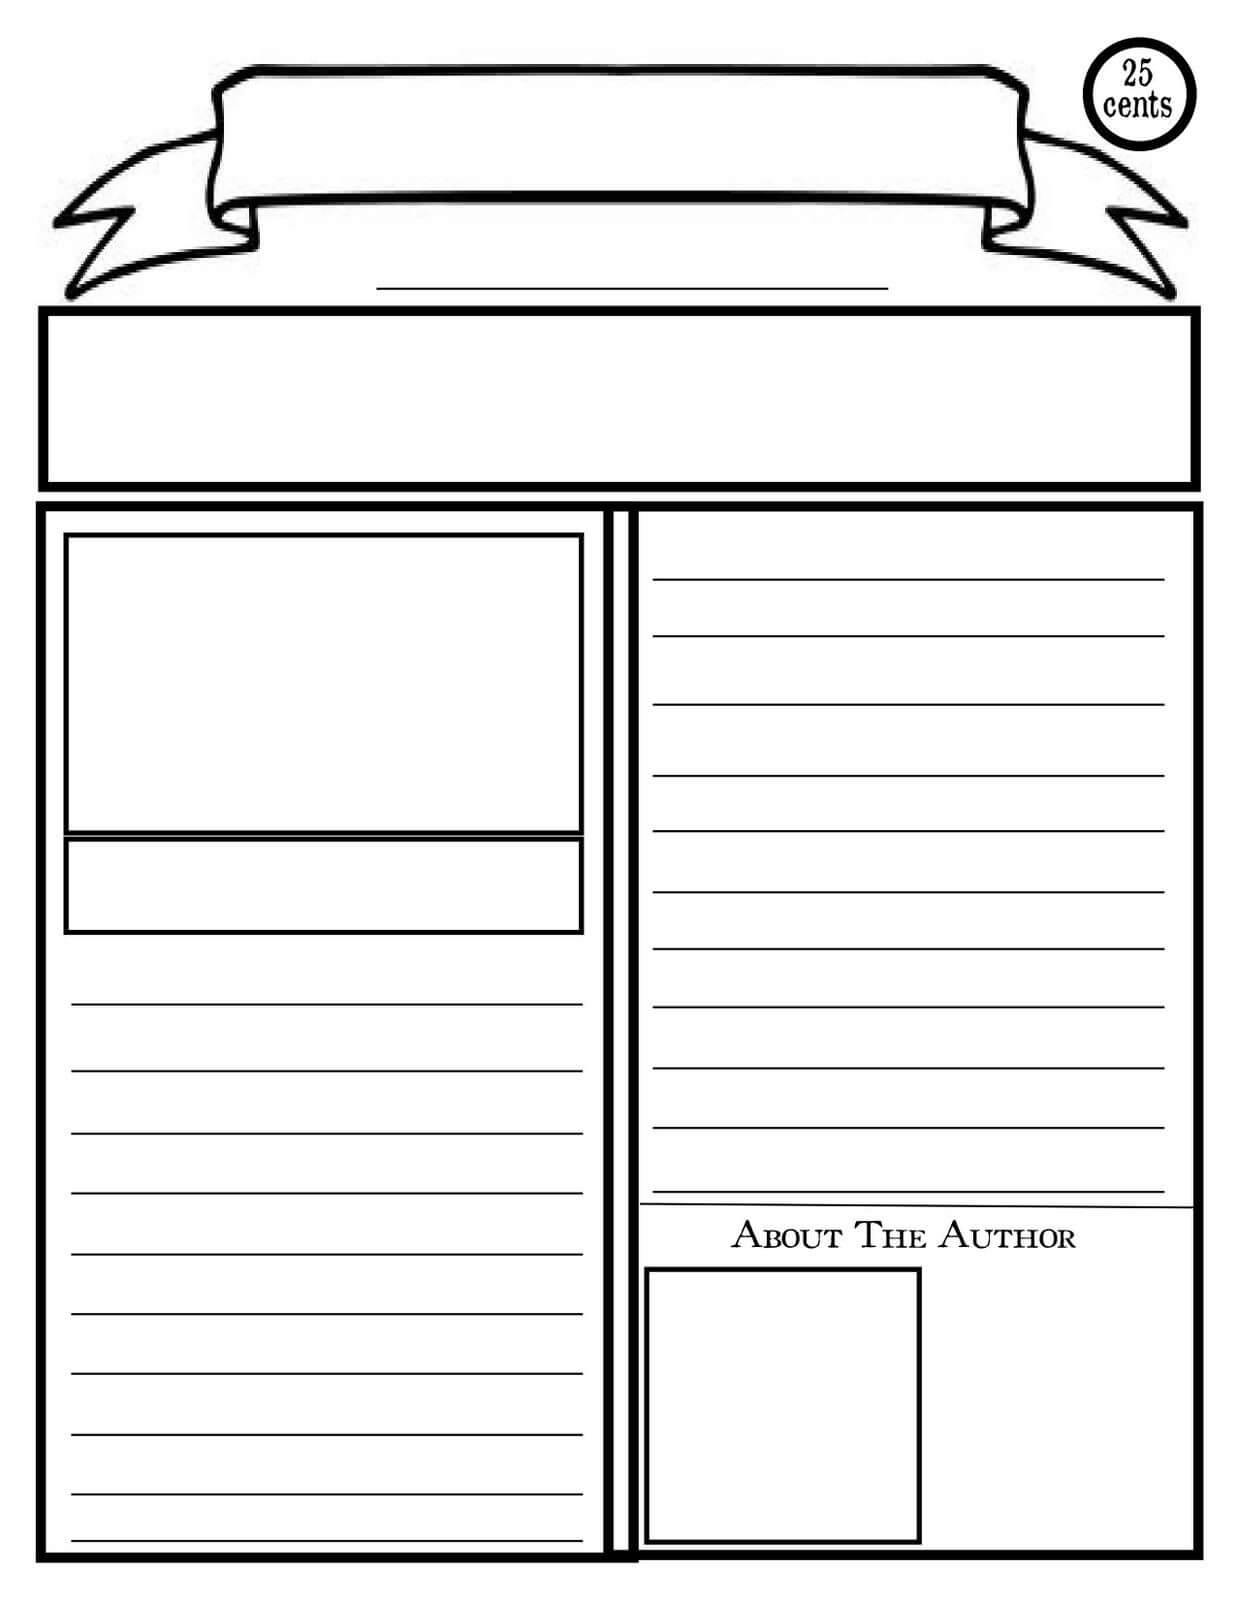 Blank Newspaper Template For Kids Printable | Newspaper With News Report Template